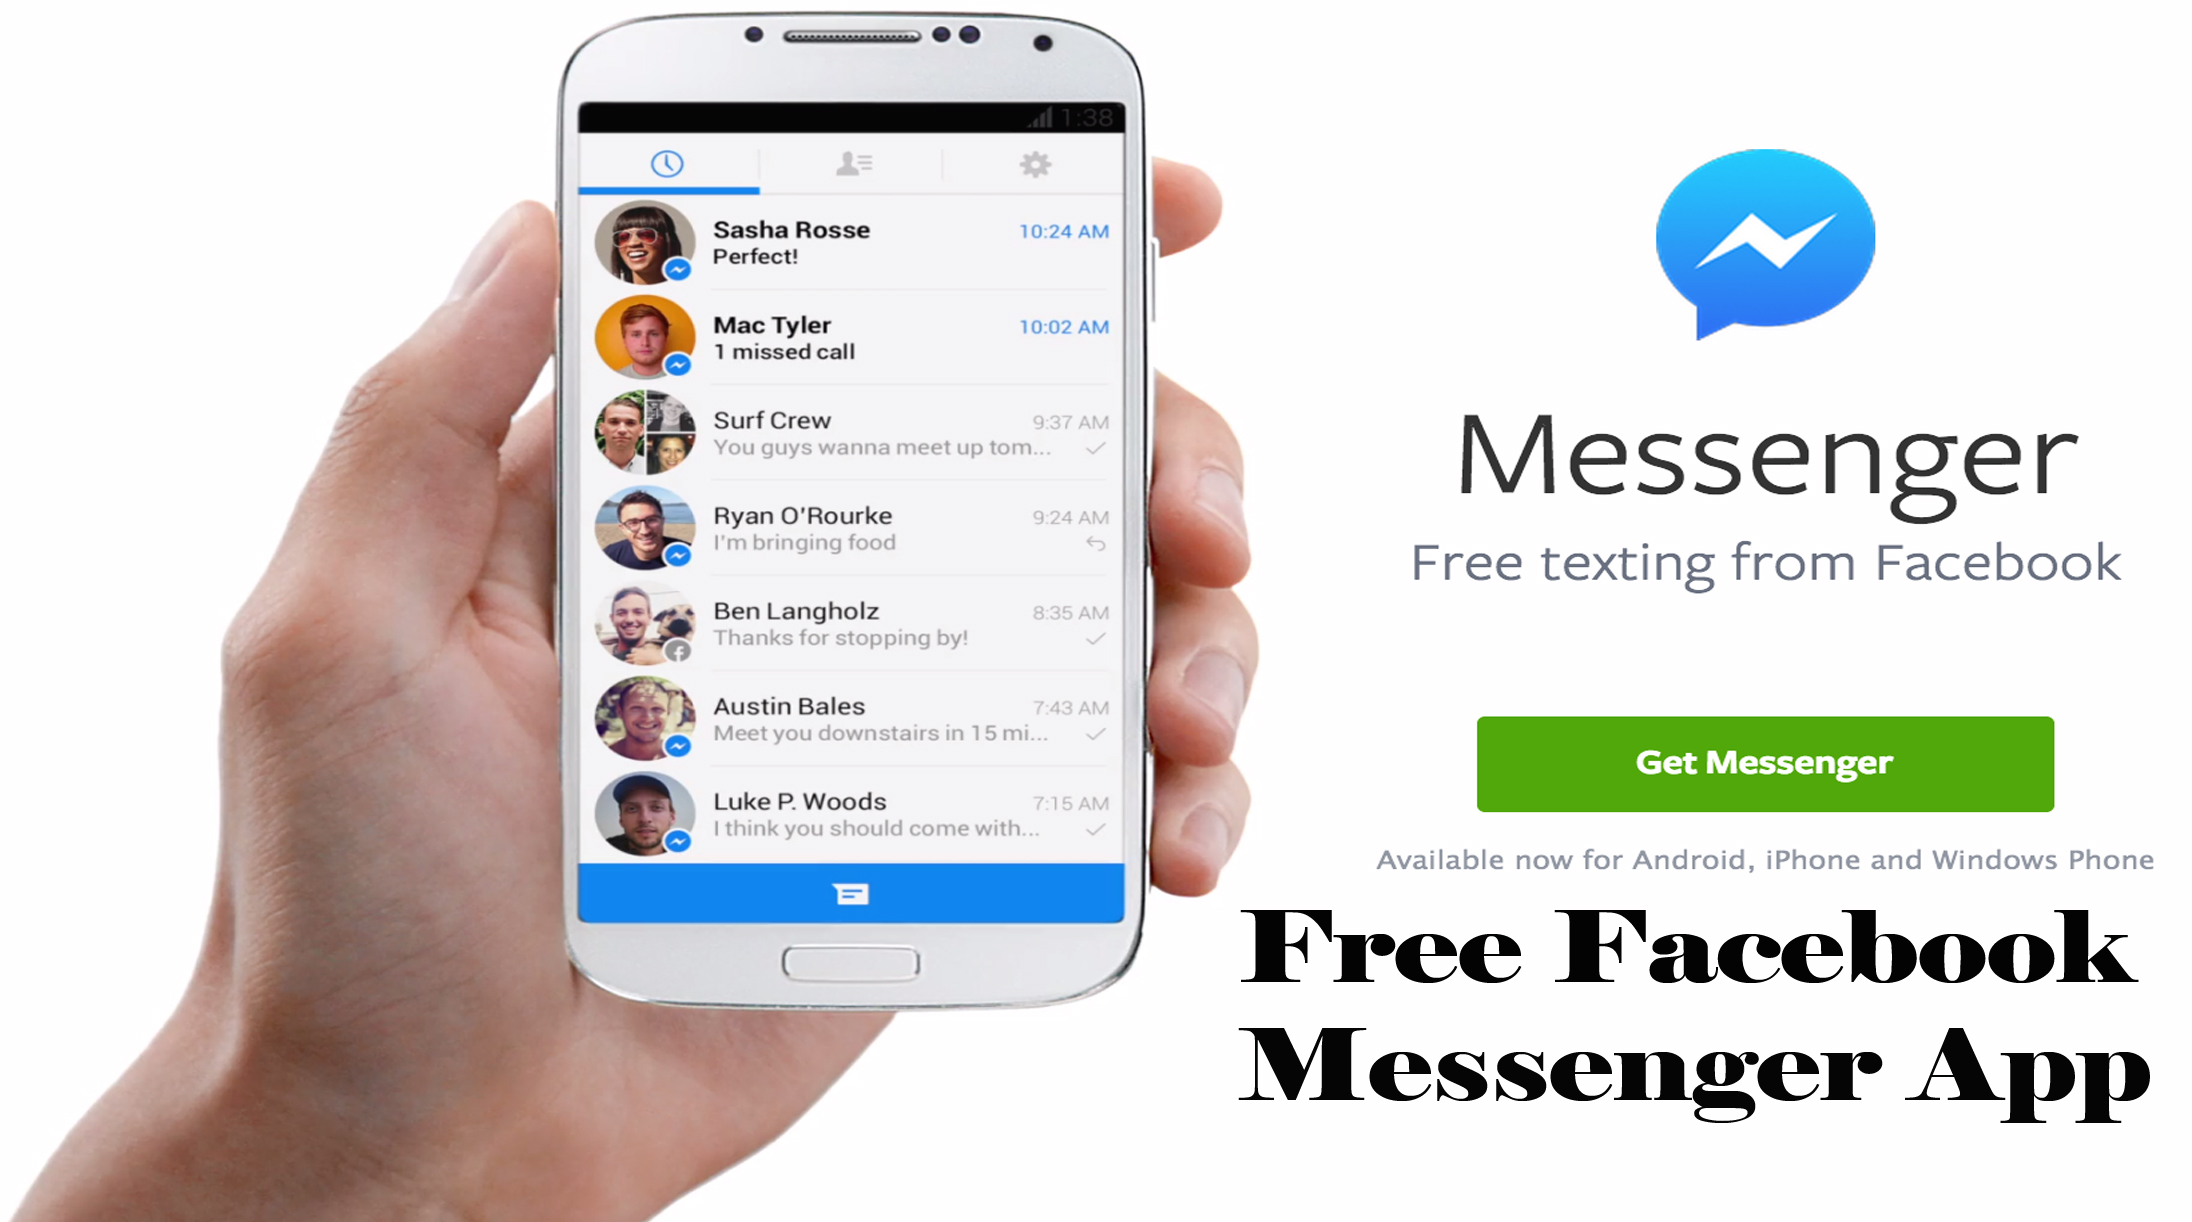 Free Facebook Messenger App - Facebook Messenger